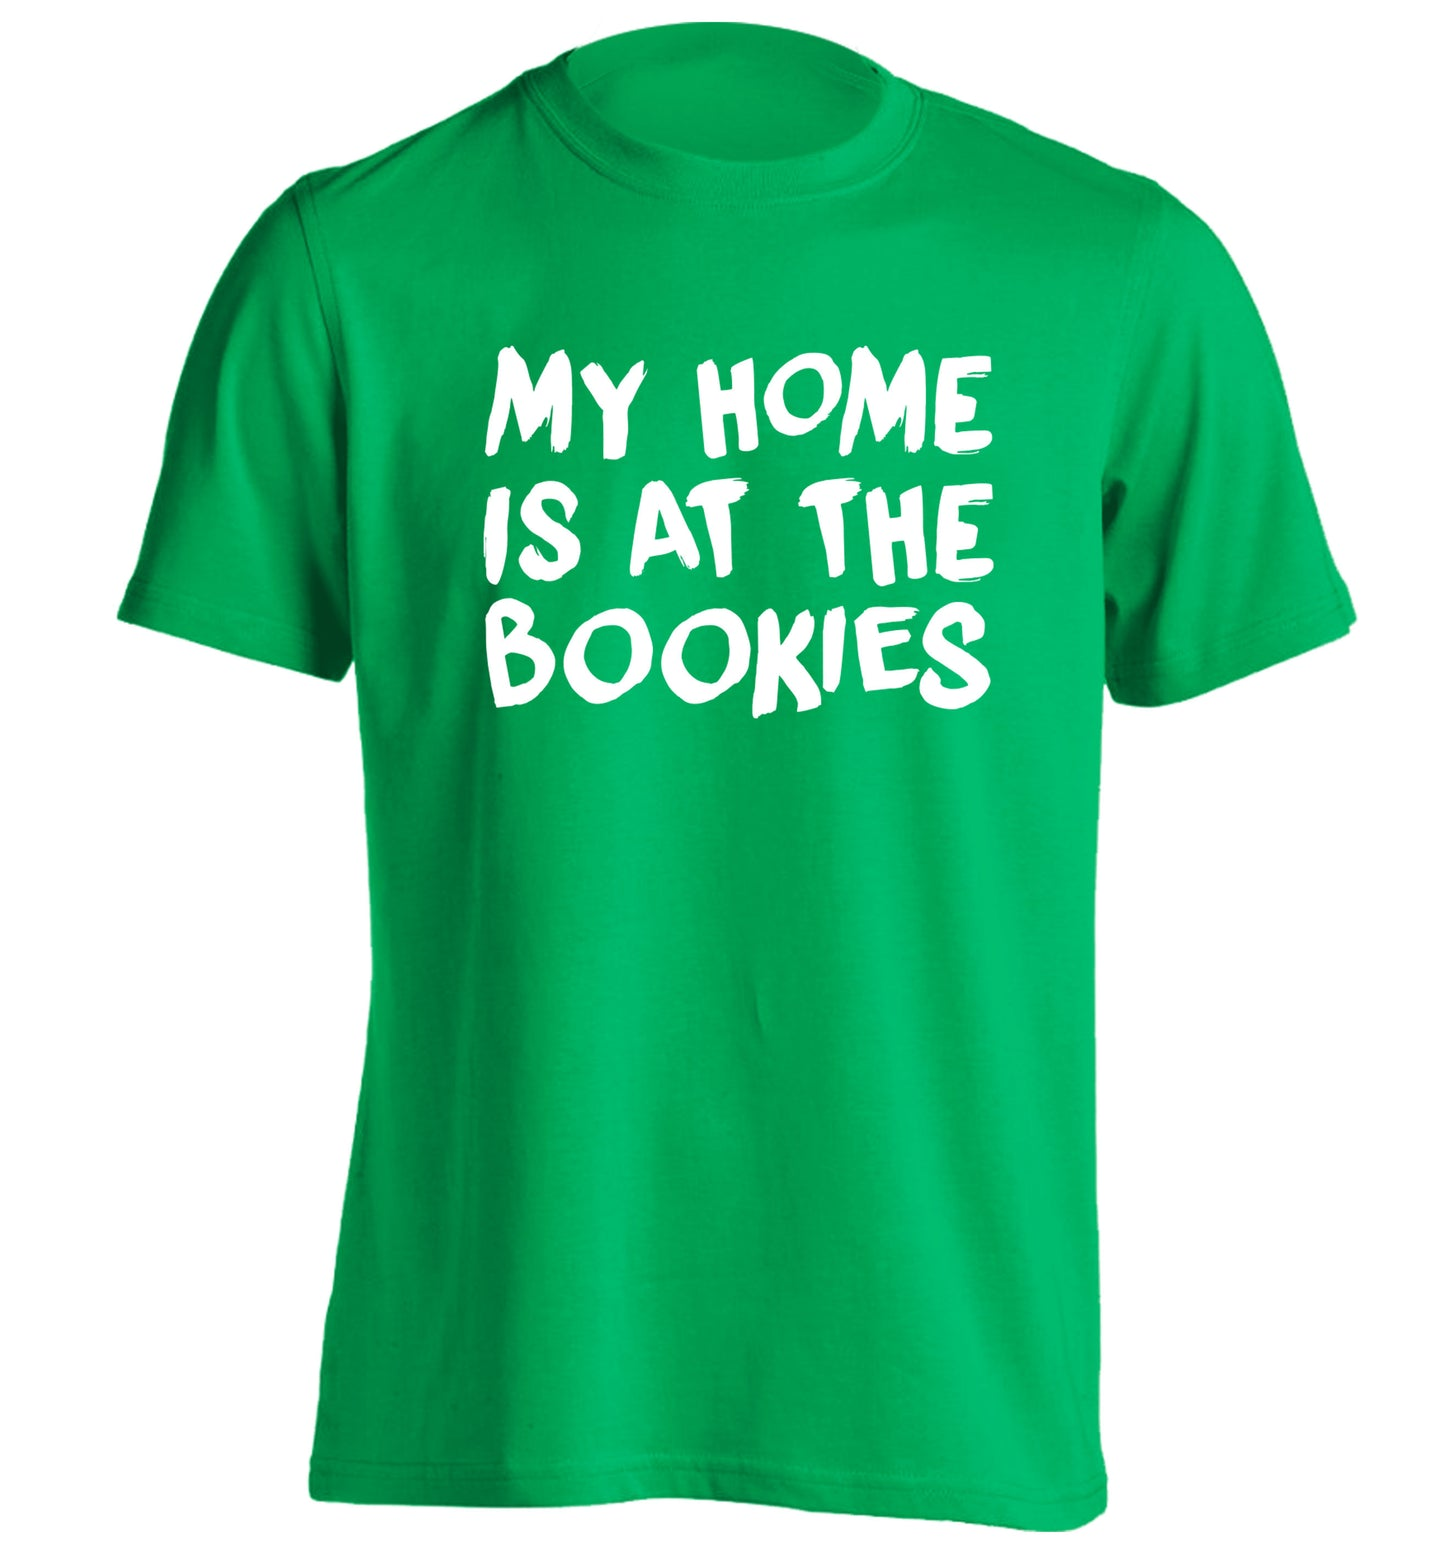 My home is at the bookies adults unisex green Tshirt 2XL